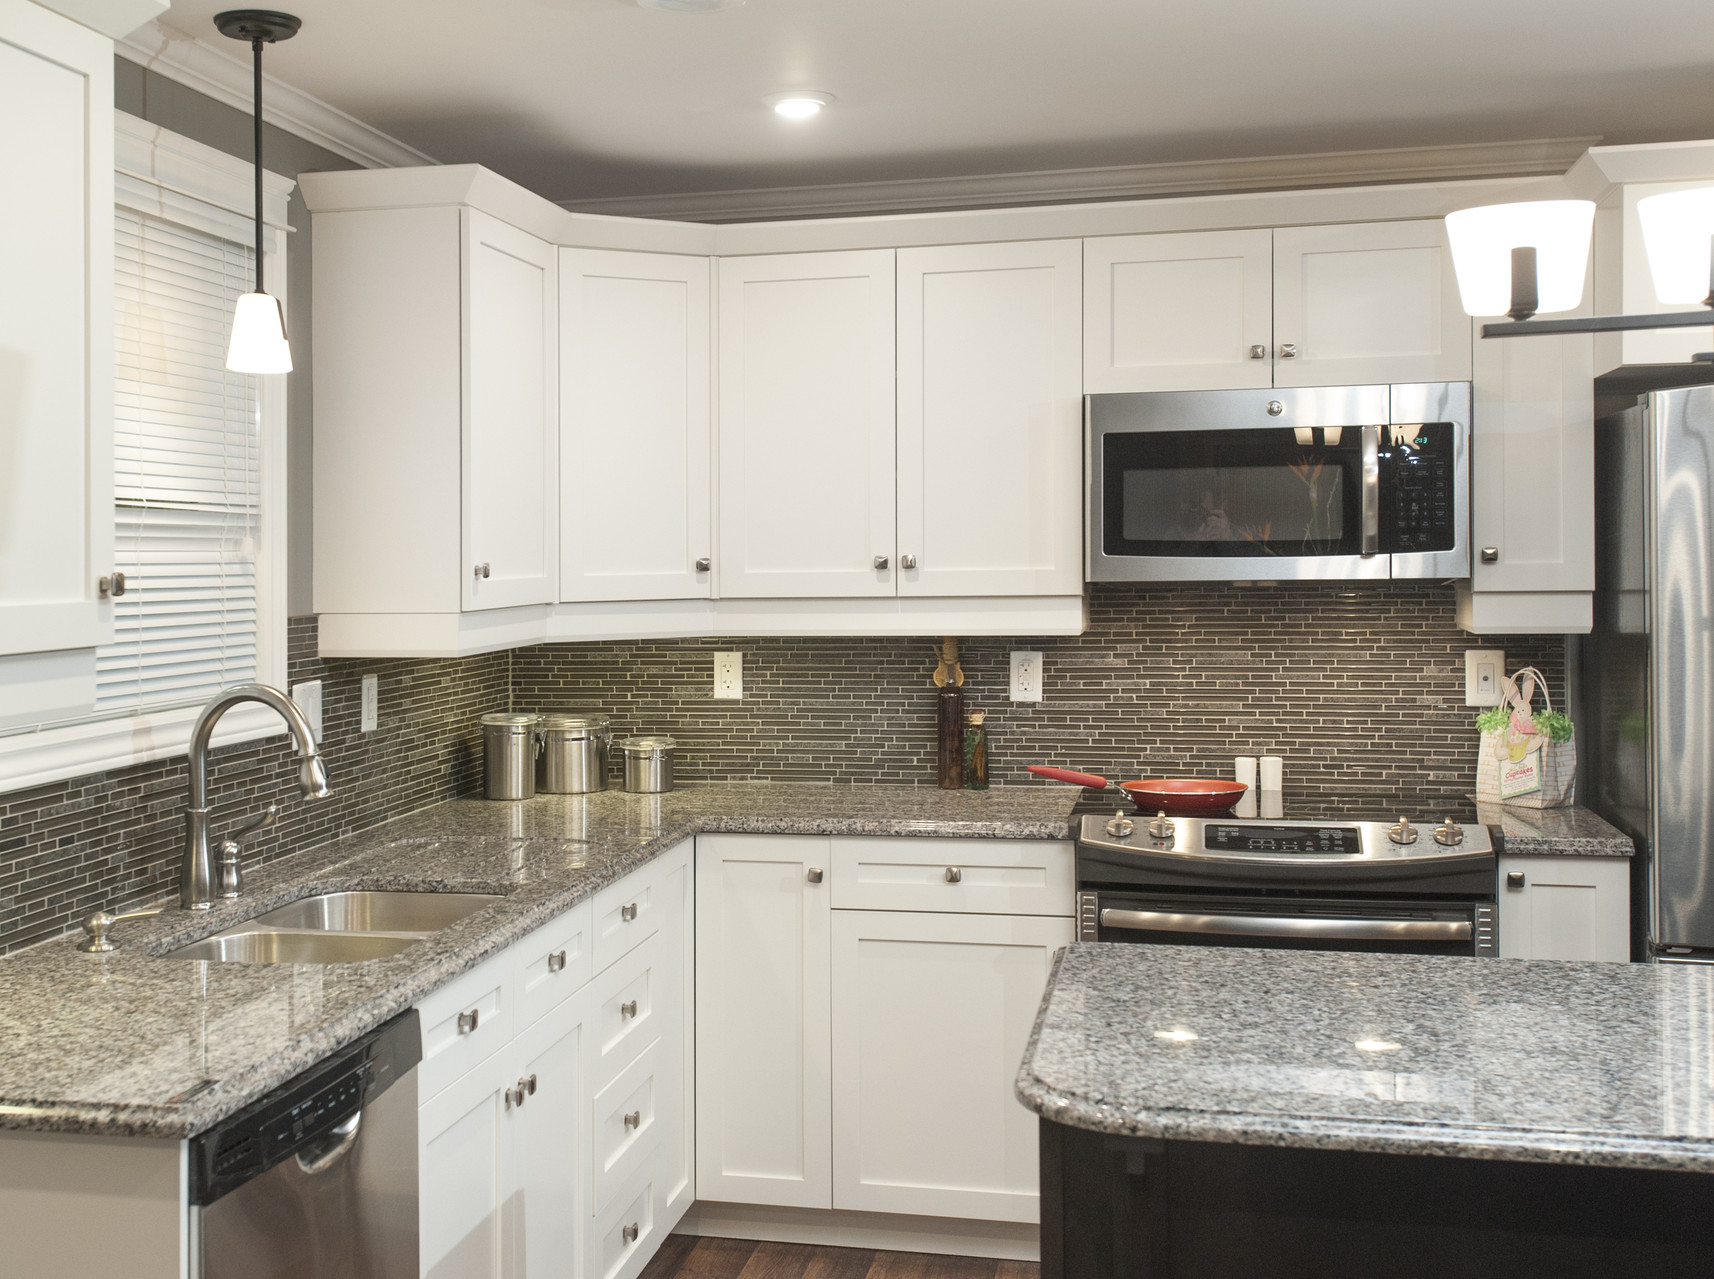 Appliance packages available ask us about what we offer